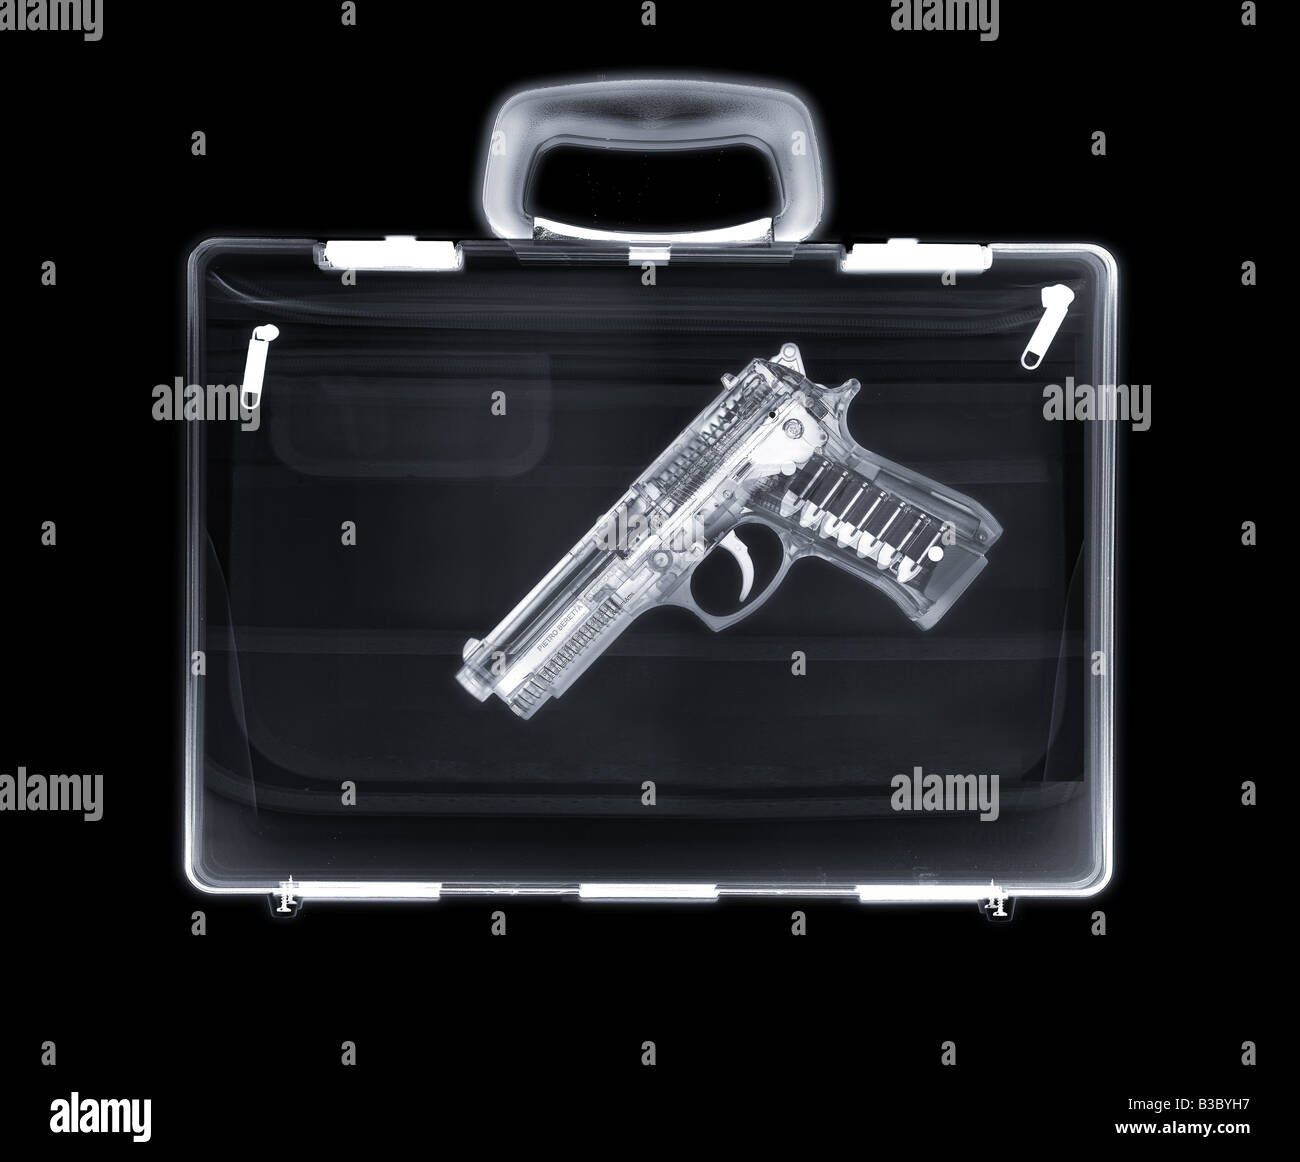 X-ray of a bag containing a gun - Stock Image